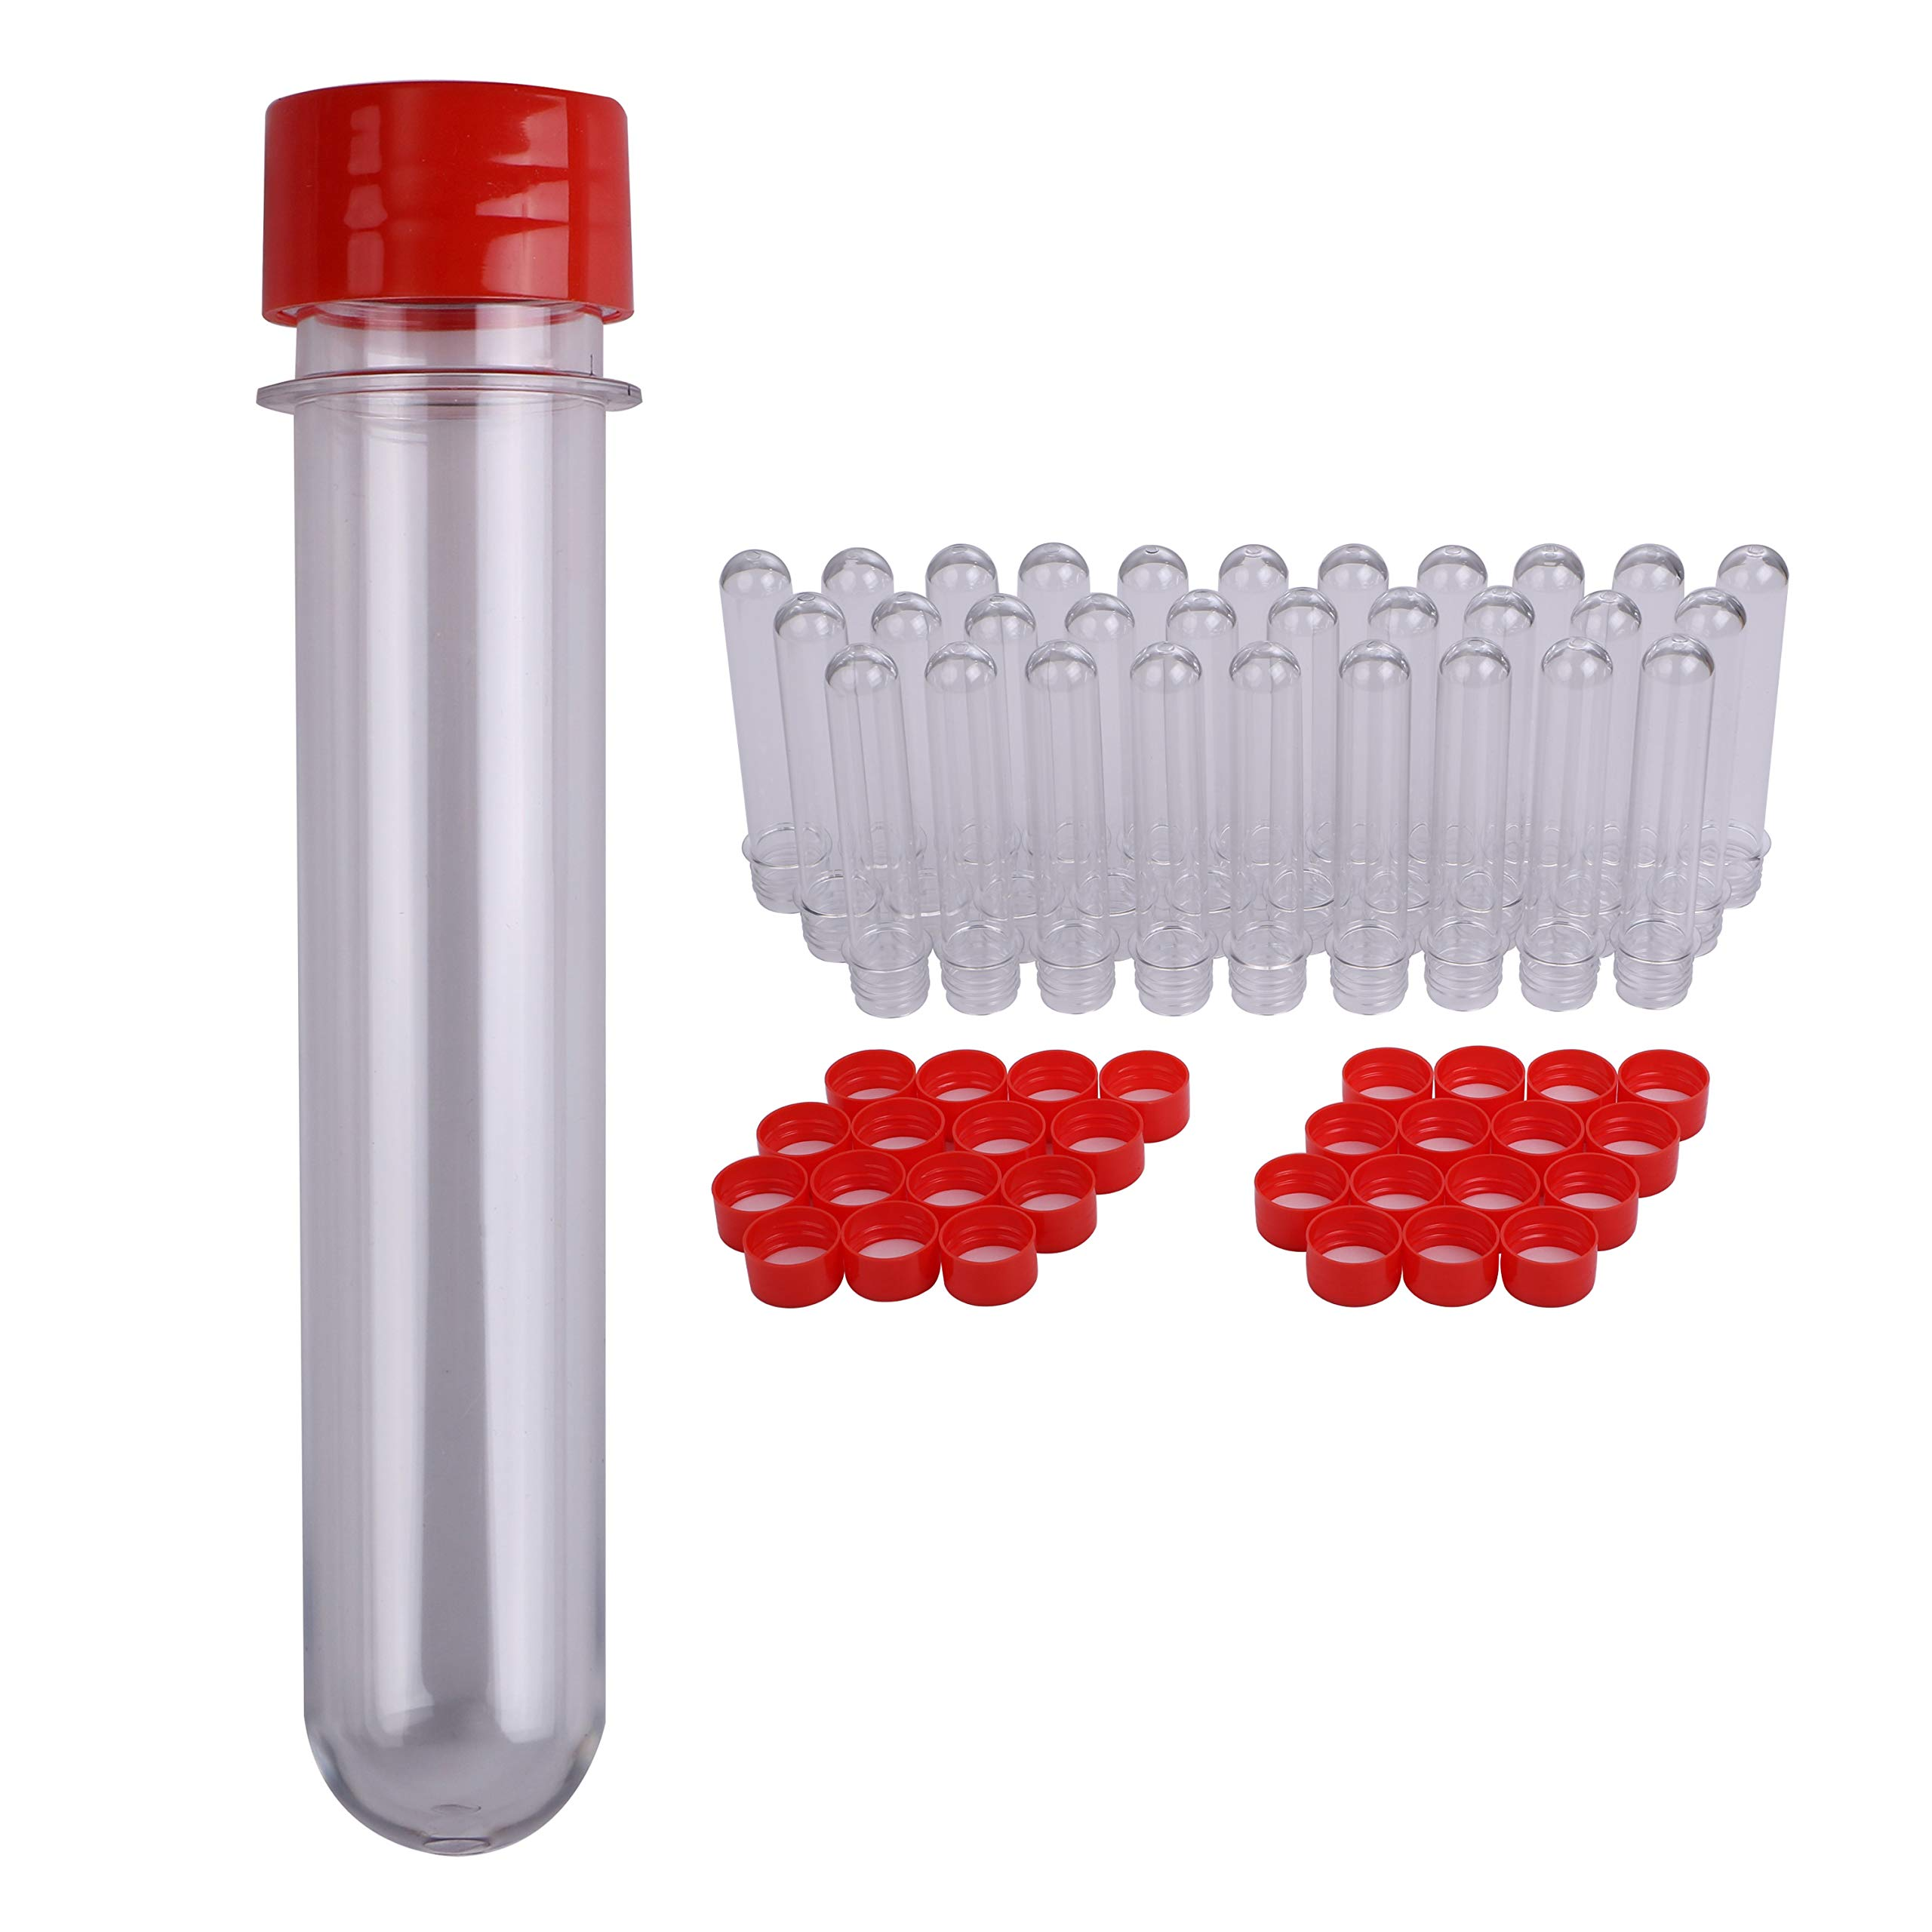 Plastic Test Tubes with Caps (30 pcs) - 140mm x 25mm   45mL - Clear Soda Bottle Preforms Test Tubes with Screw Caps - Bath Salt Containers, Candy, Gumball, Parties, Favors, Alcohol, Geocache (Red)